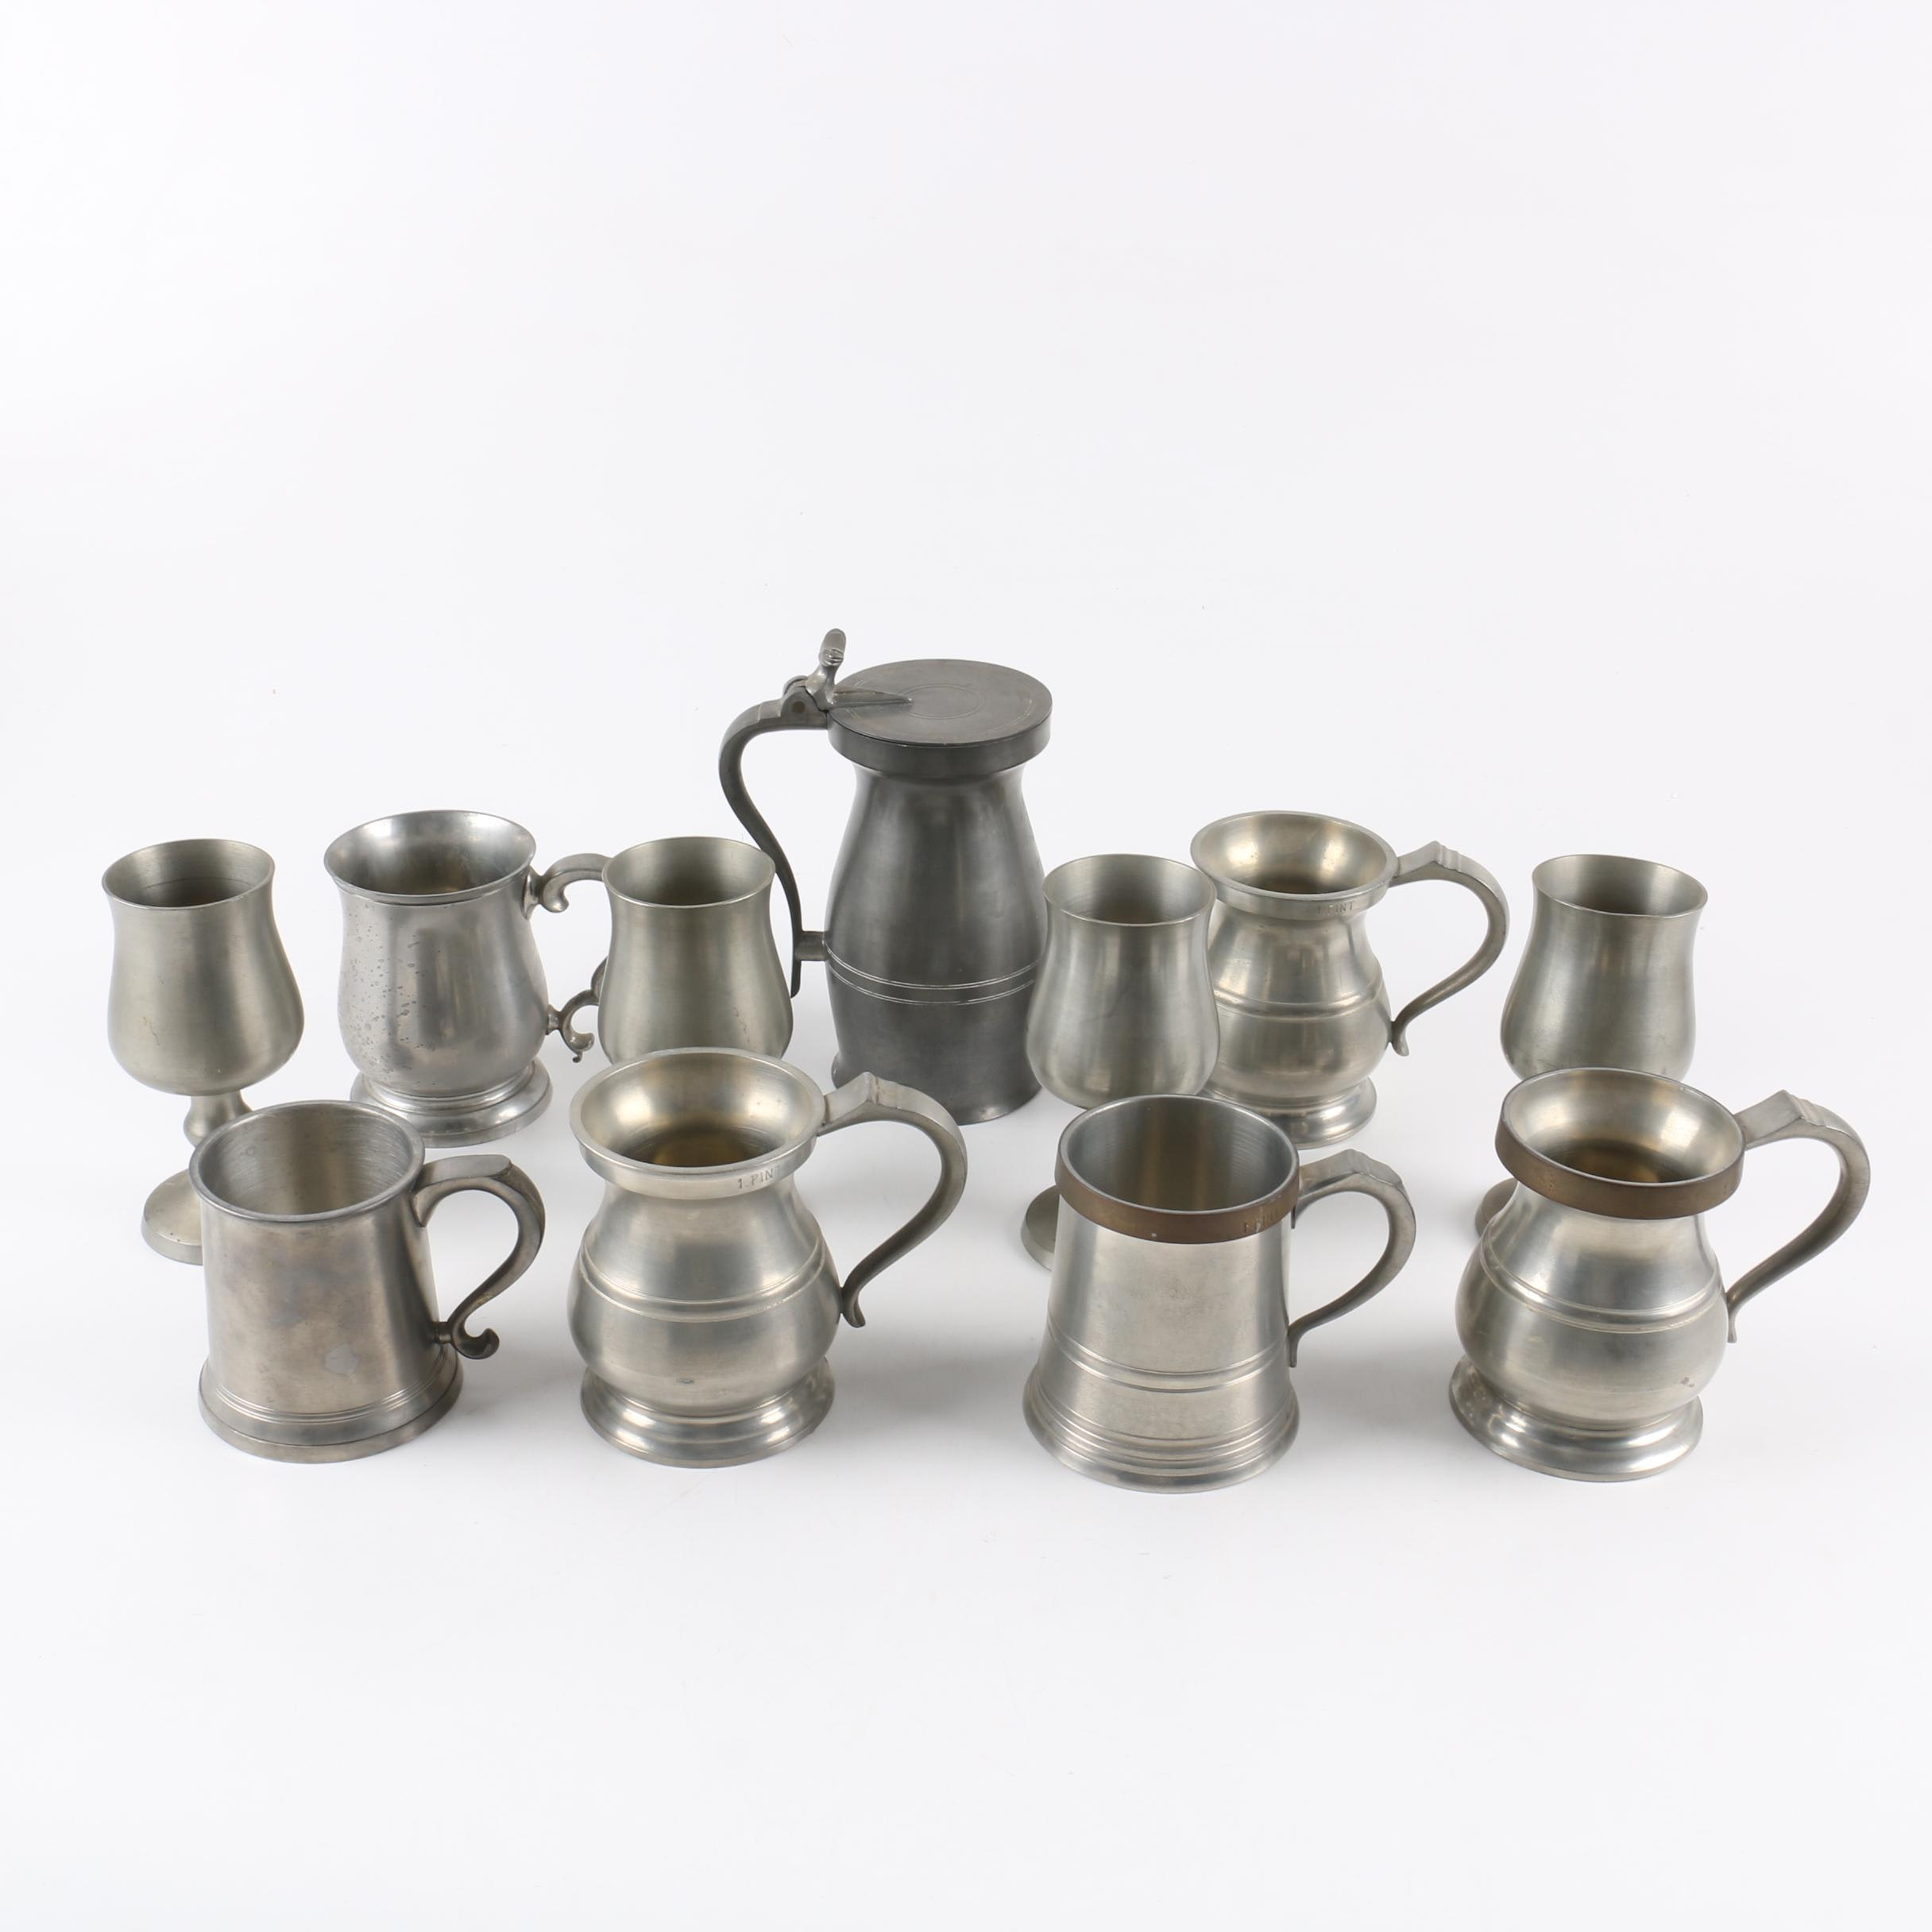 Hand Turned James Yates Pewter Mugs and Assorted Pewter Cups and Mugs